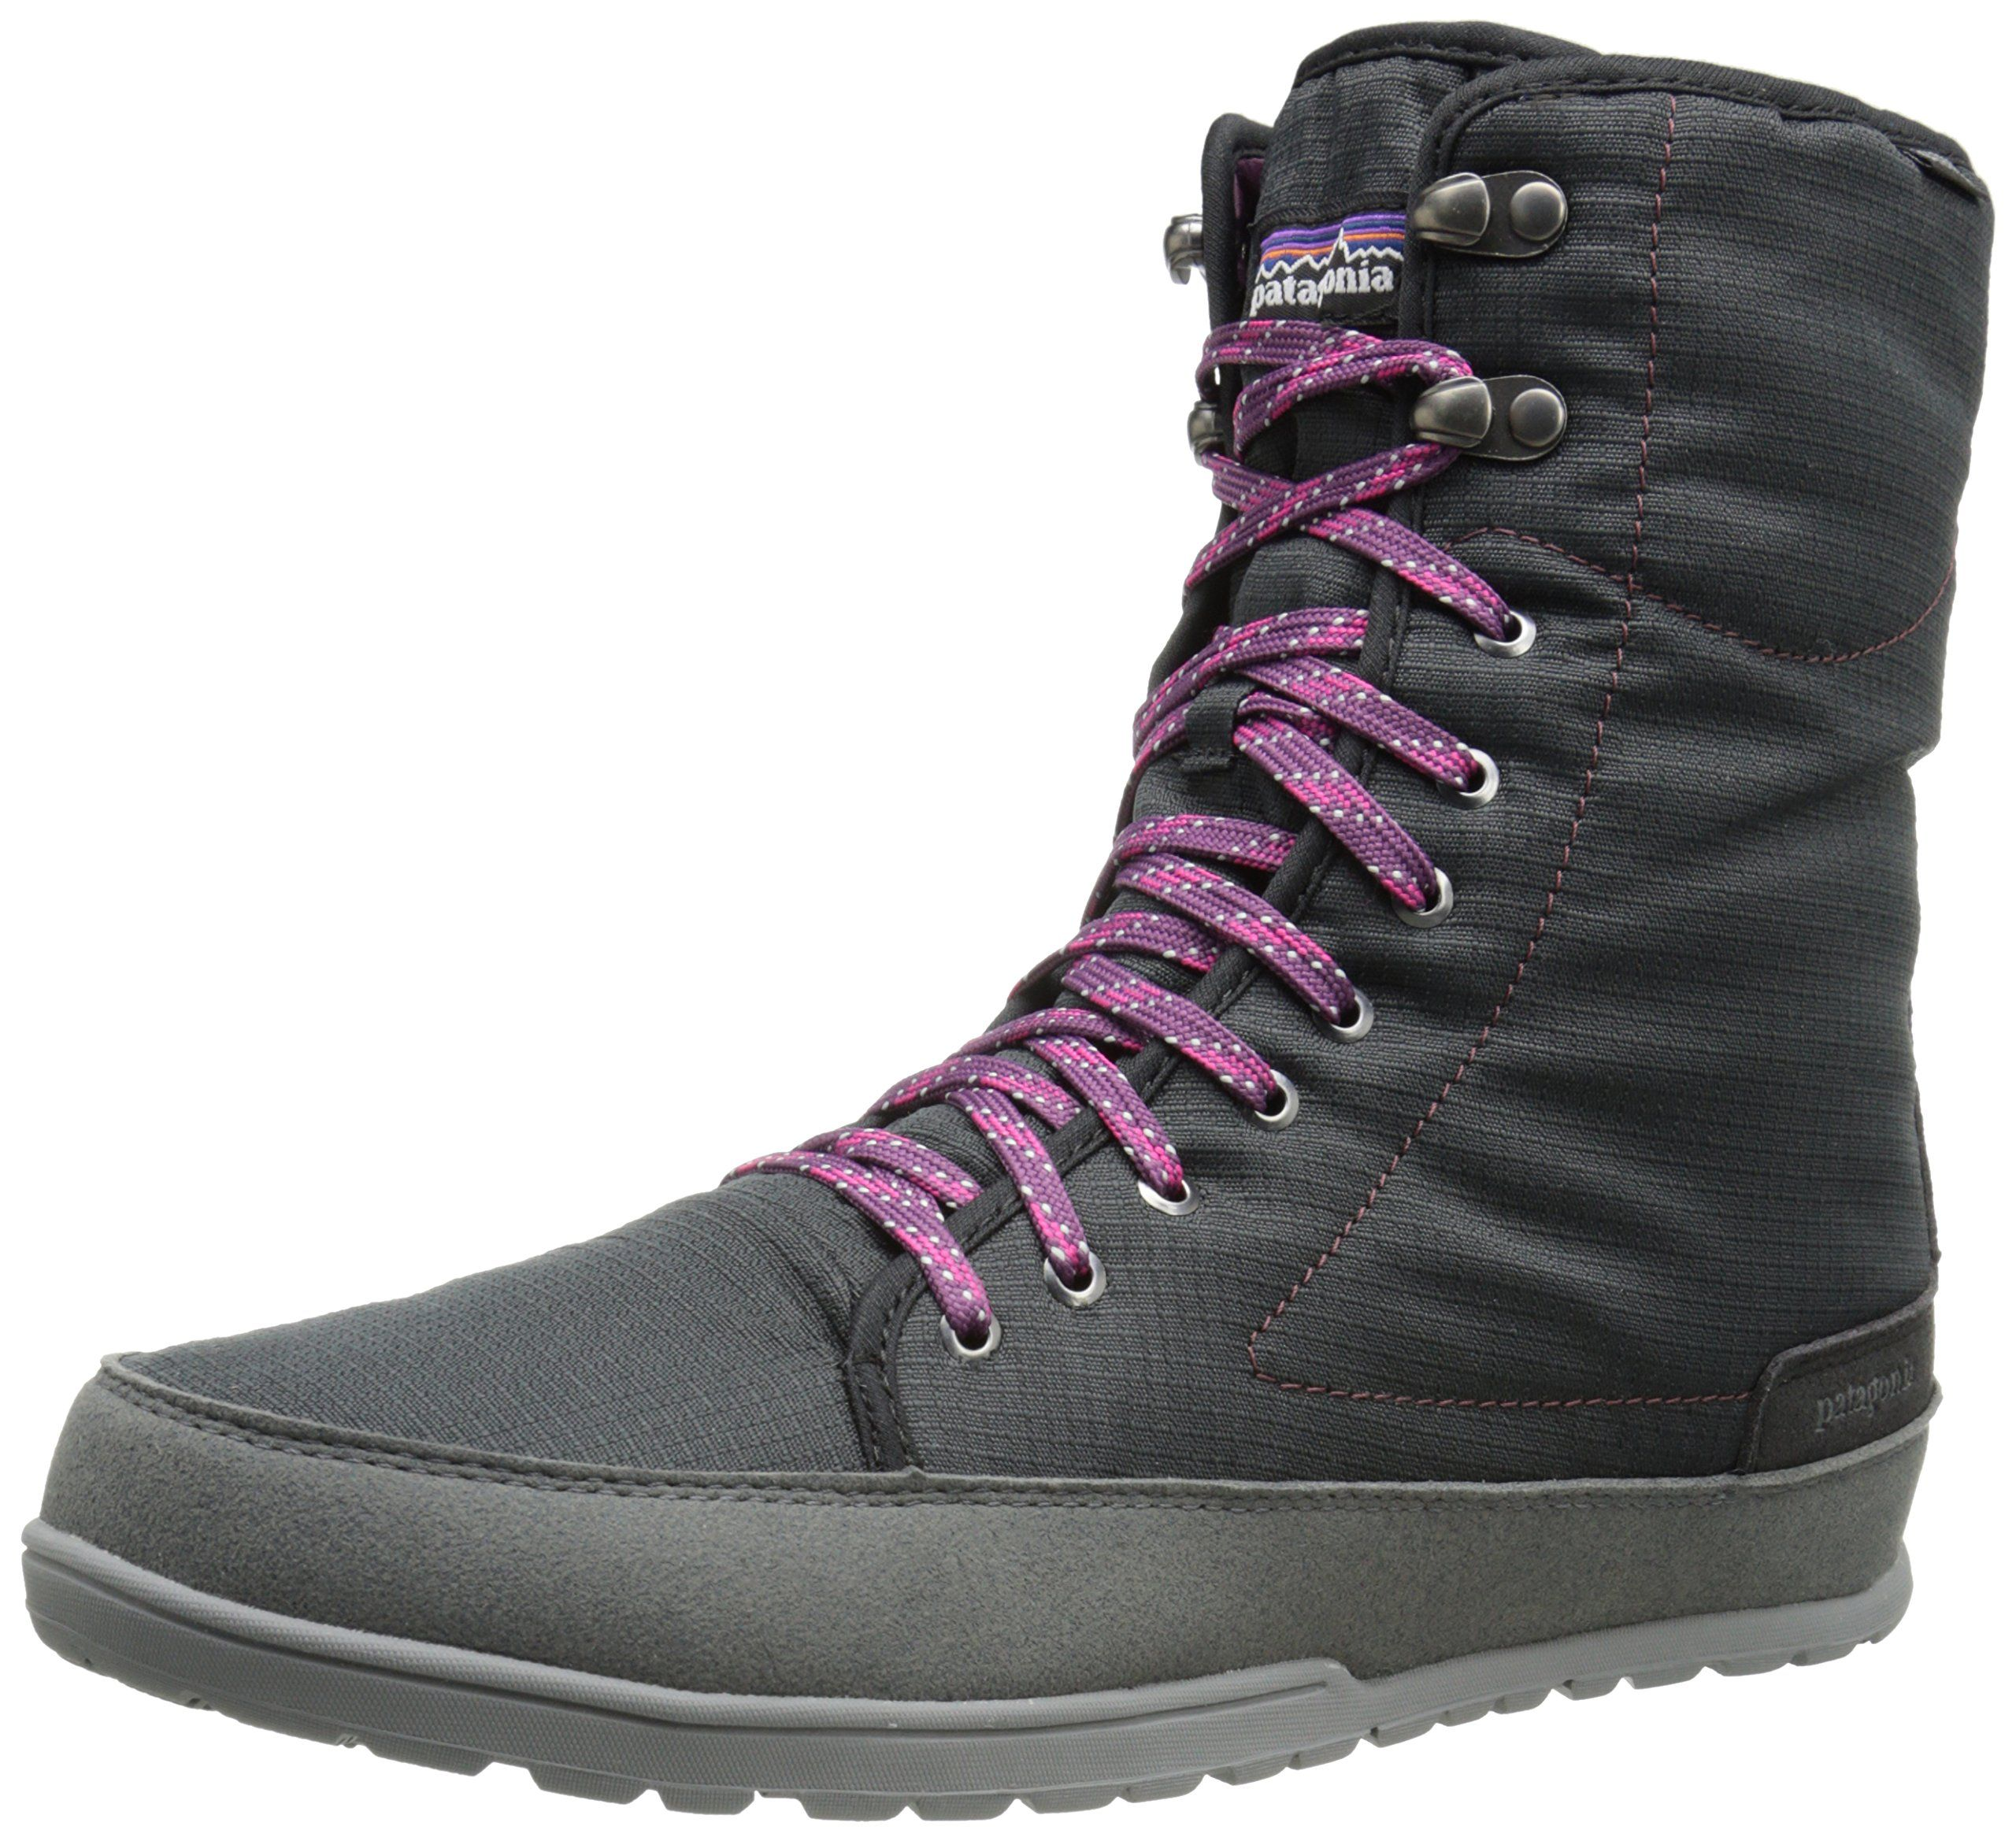 Patagonia Snow Boots: Patagonia Women's Activist Puff High Waterproof Snow Boot